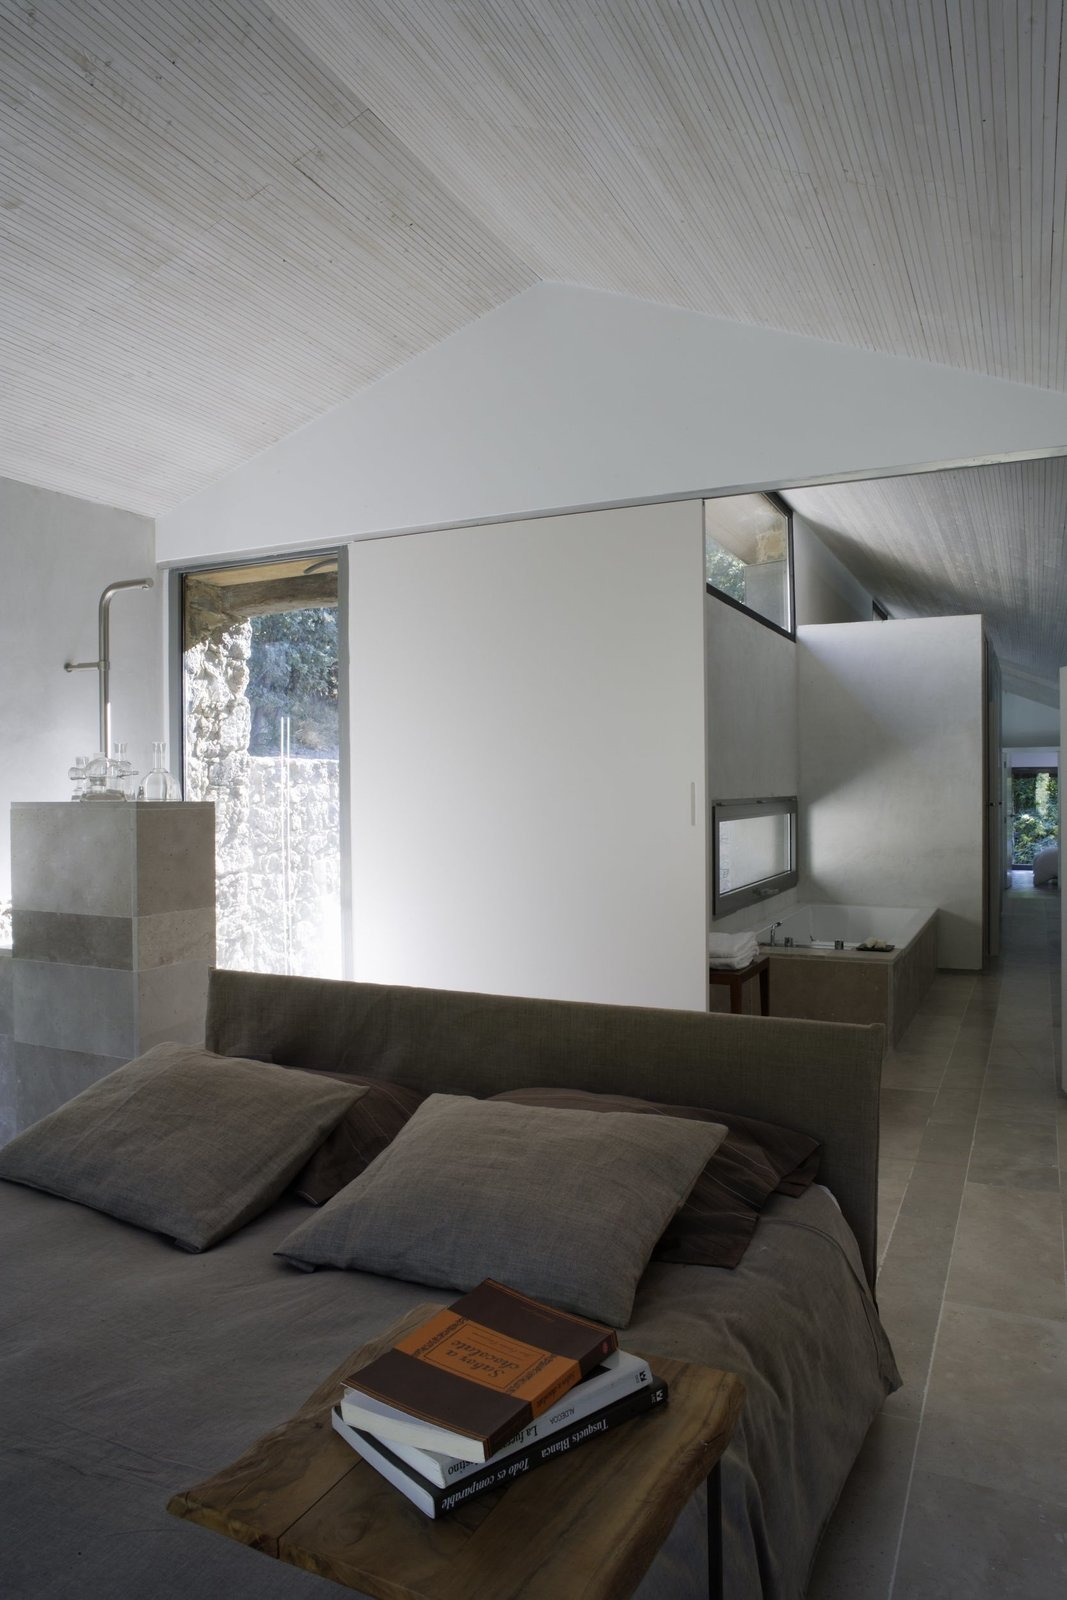 Bedroom and Bed  Photo 12 of 14 in An Abandoned Stable in Spain Is Transformed Into a Sustainable Vacation Home For Rent